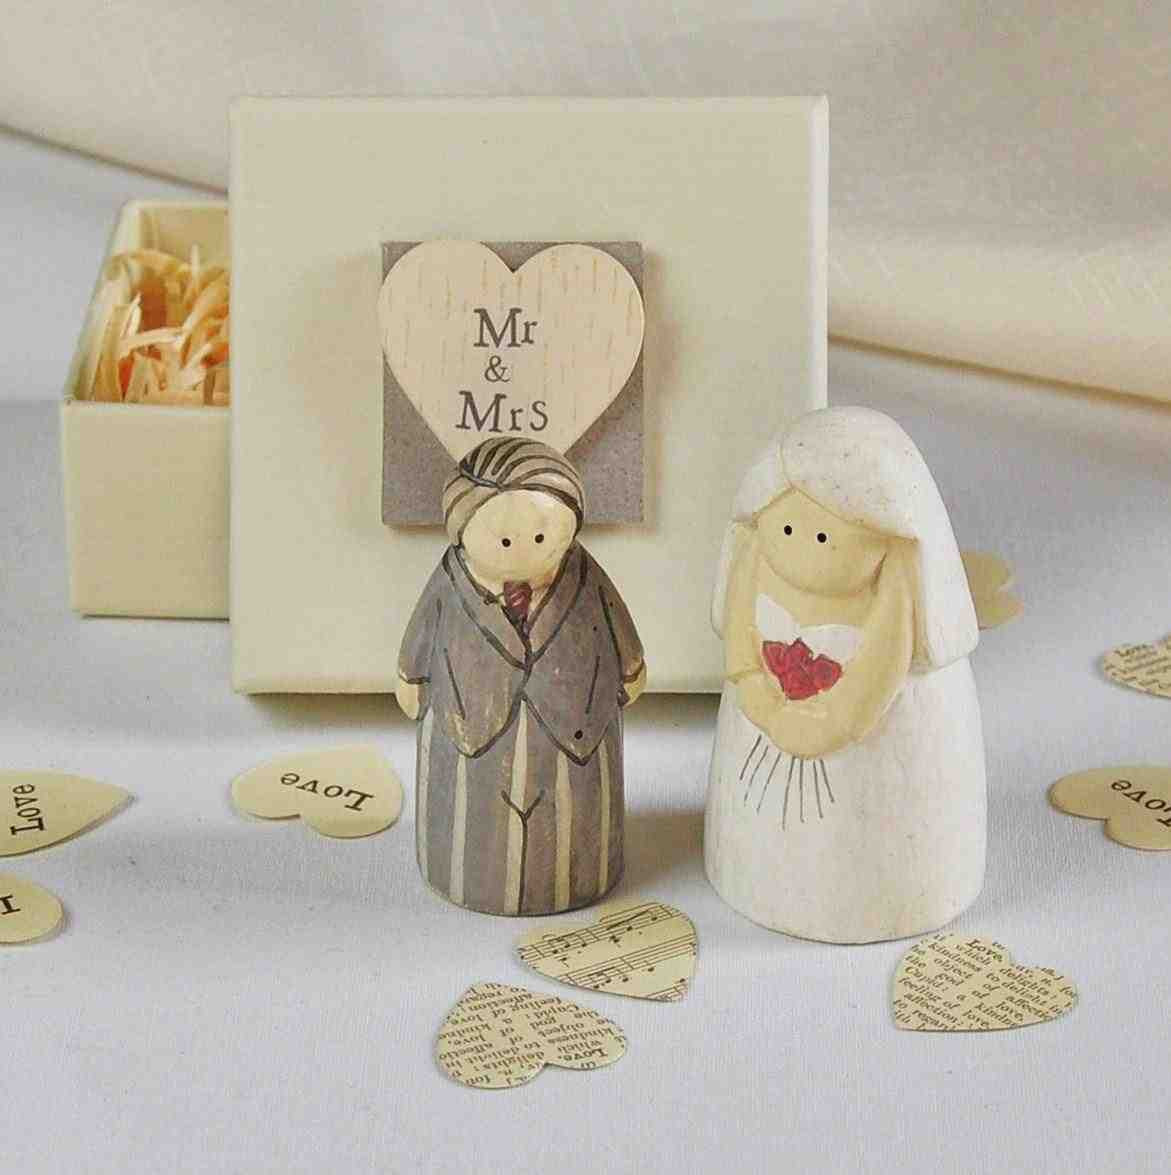 Best ideas about Wedding Gift Ideas From Groom To Bride . Save or Pin Wedding Gift Ideas For Bride From Groom Wedding and Now.